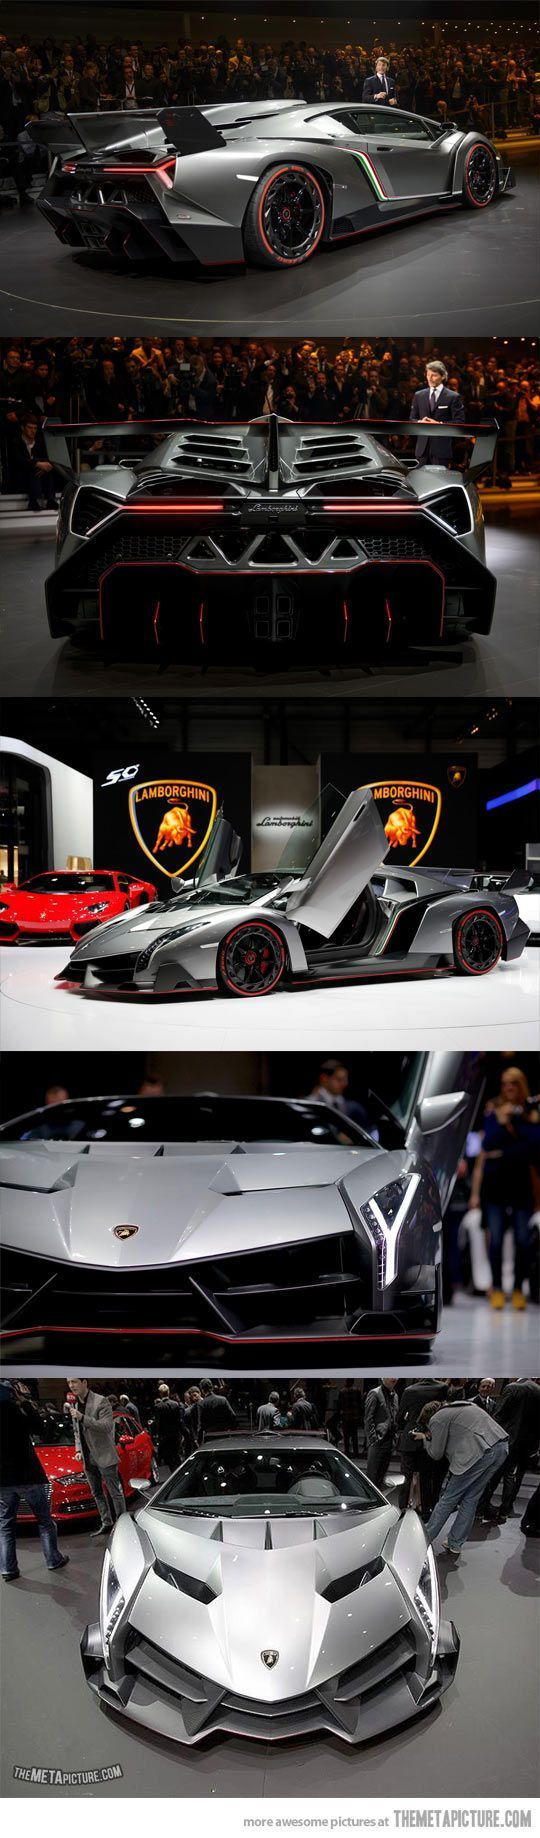 Lamborghini Veneno Only 3 Copies In The World Price More Than 3